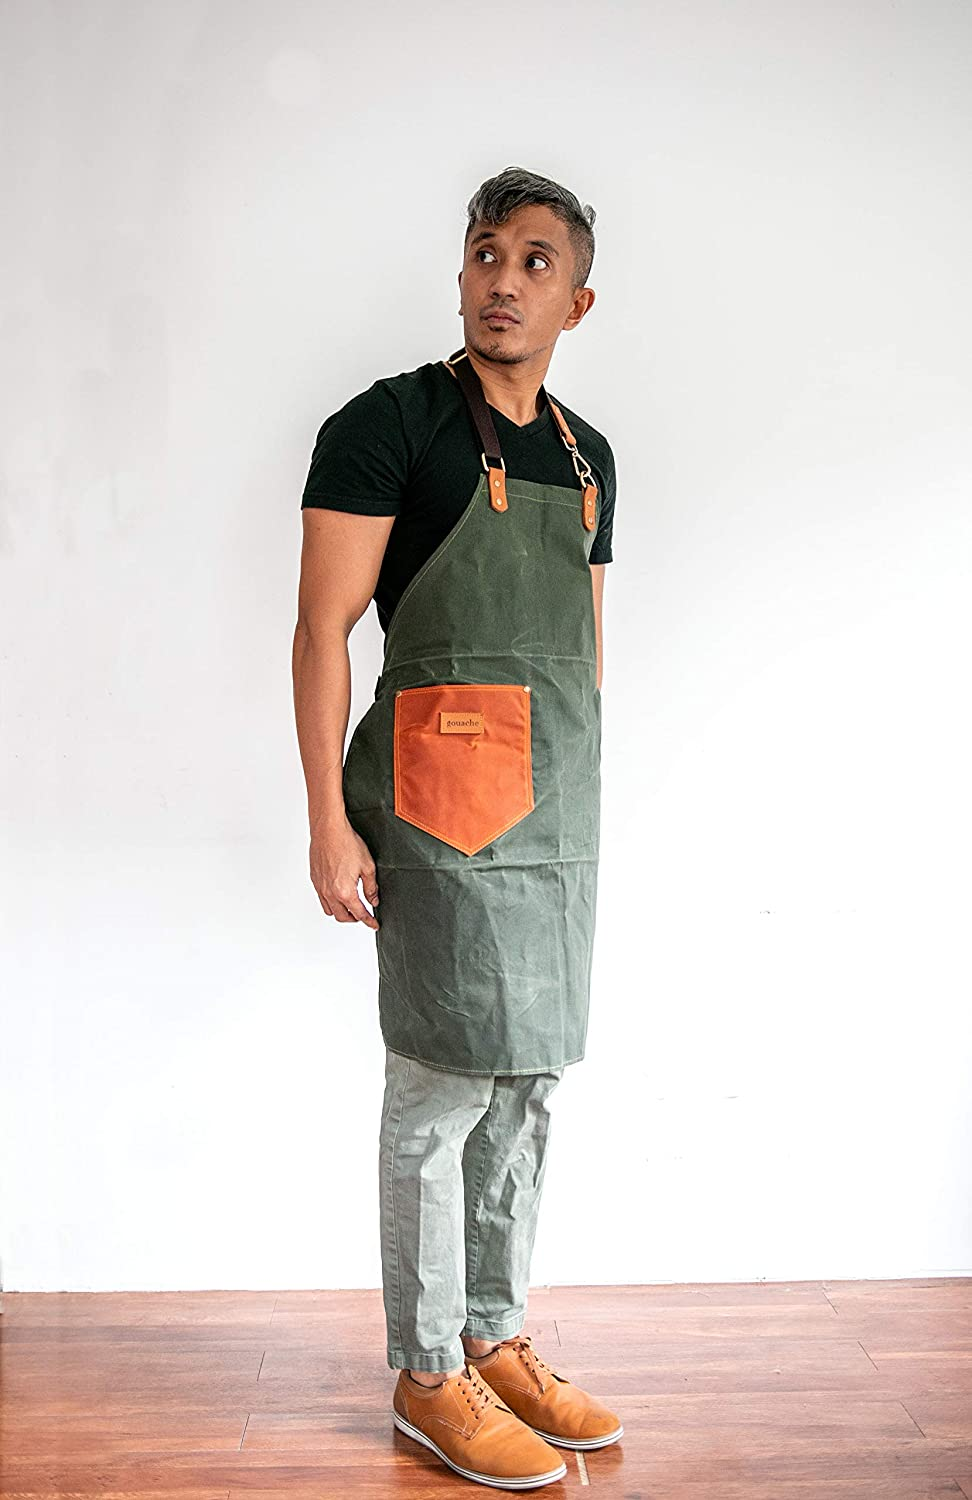 Buy Handmade Waxed Canvas Apron with Leather Straps   Water ...